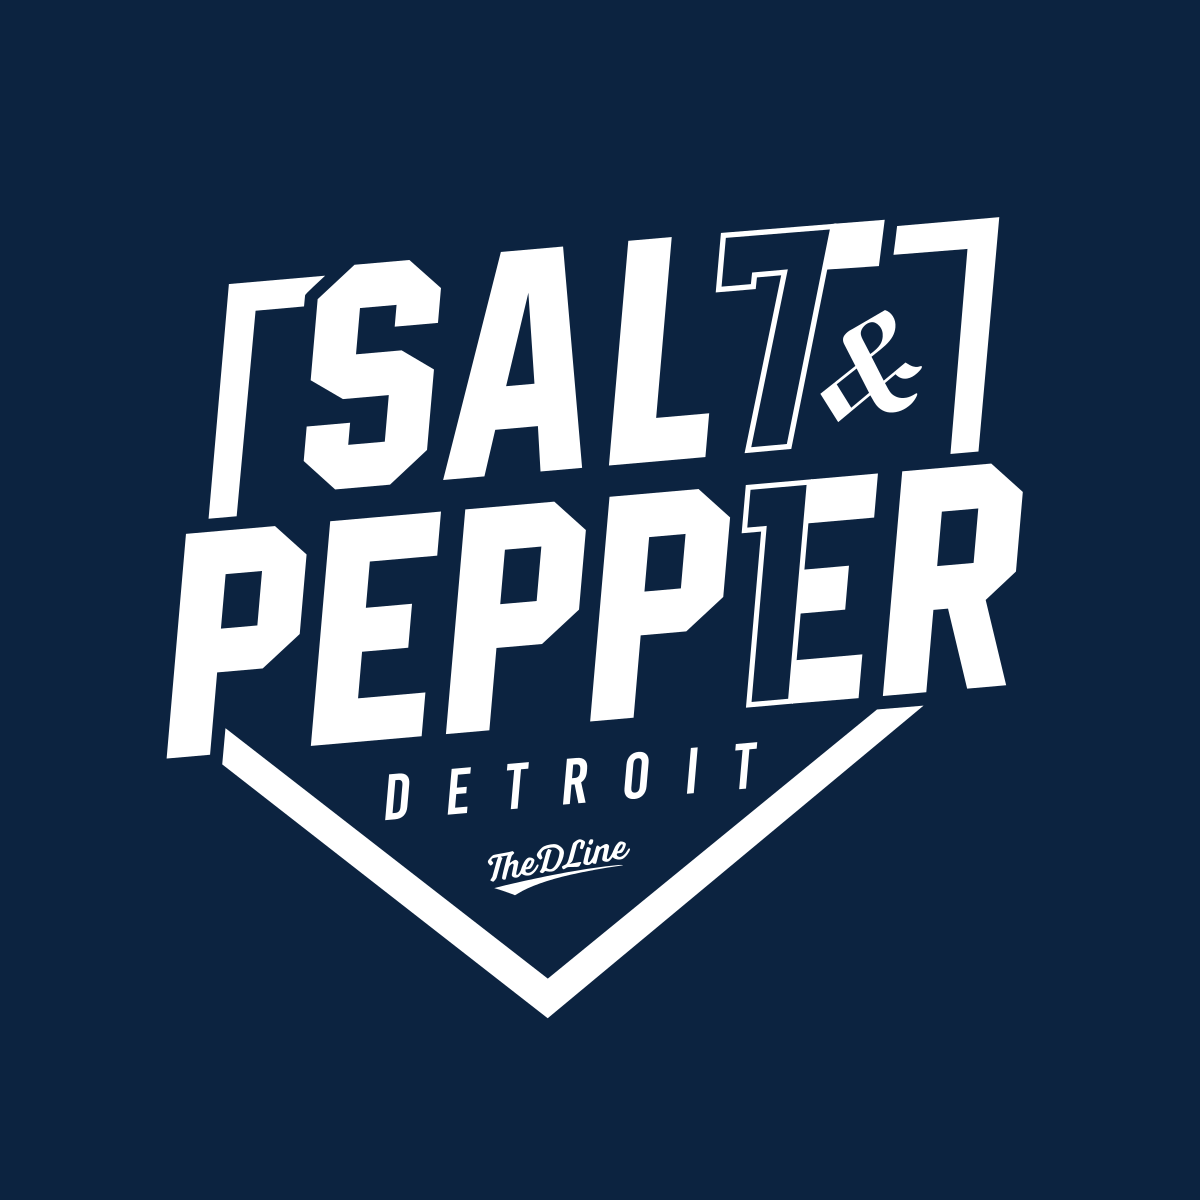 SALT & PEPPER SM.png